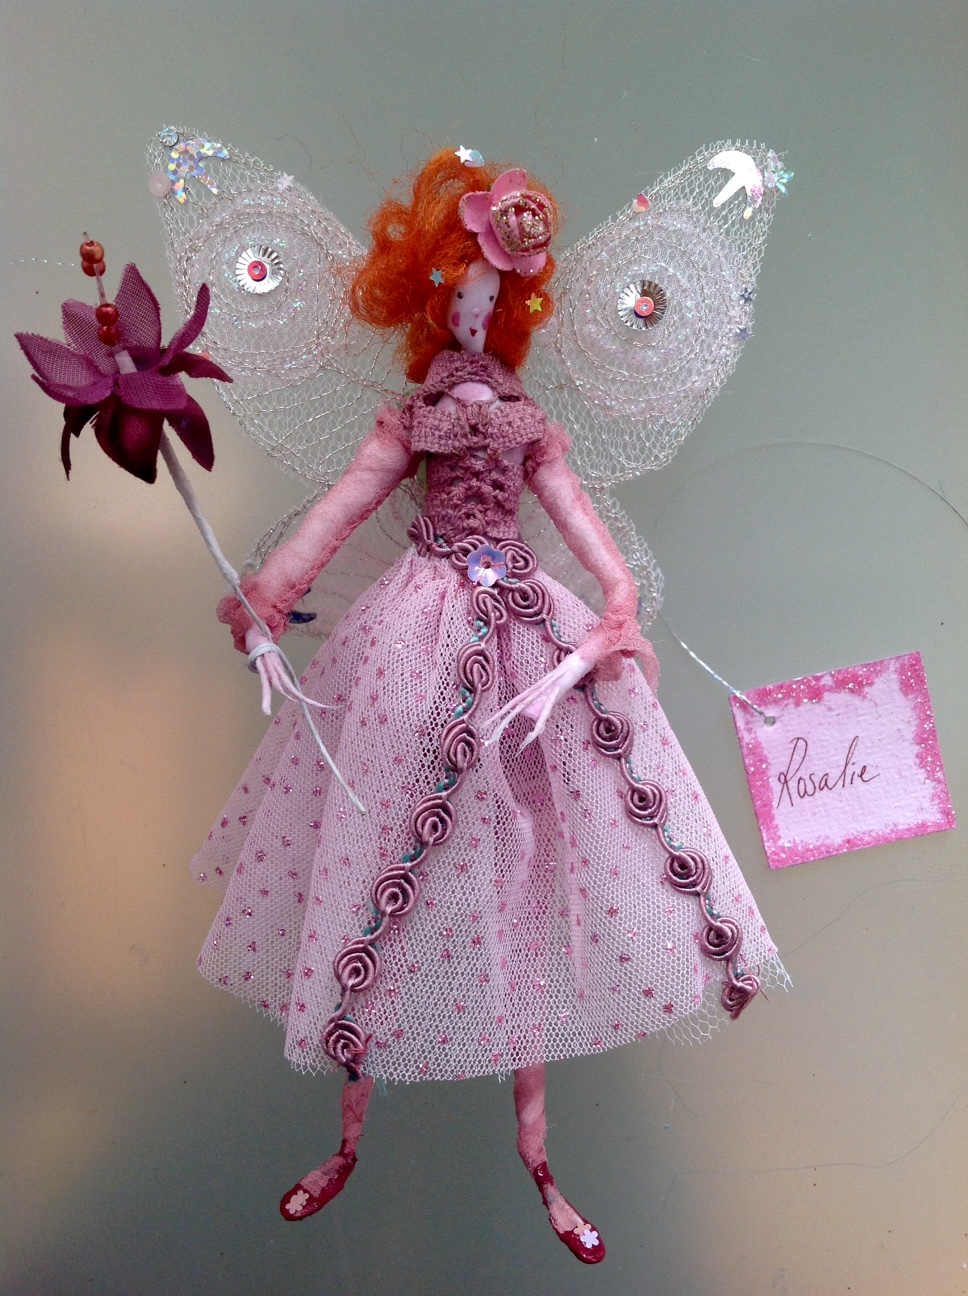 ROSALIE A 17cm high fairy with a a painted silk face . She is wearing a hand dyed top and stockings with a stiff glittered net skirt. She has a pink paper button at the back , embroidered wings , and a paper rose in her hair. She comes in an organza bag with dried petals in it. £35 plus £3.50 p&p